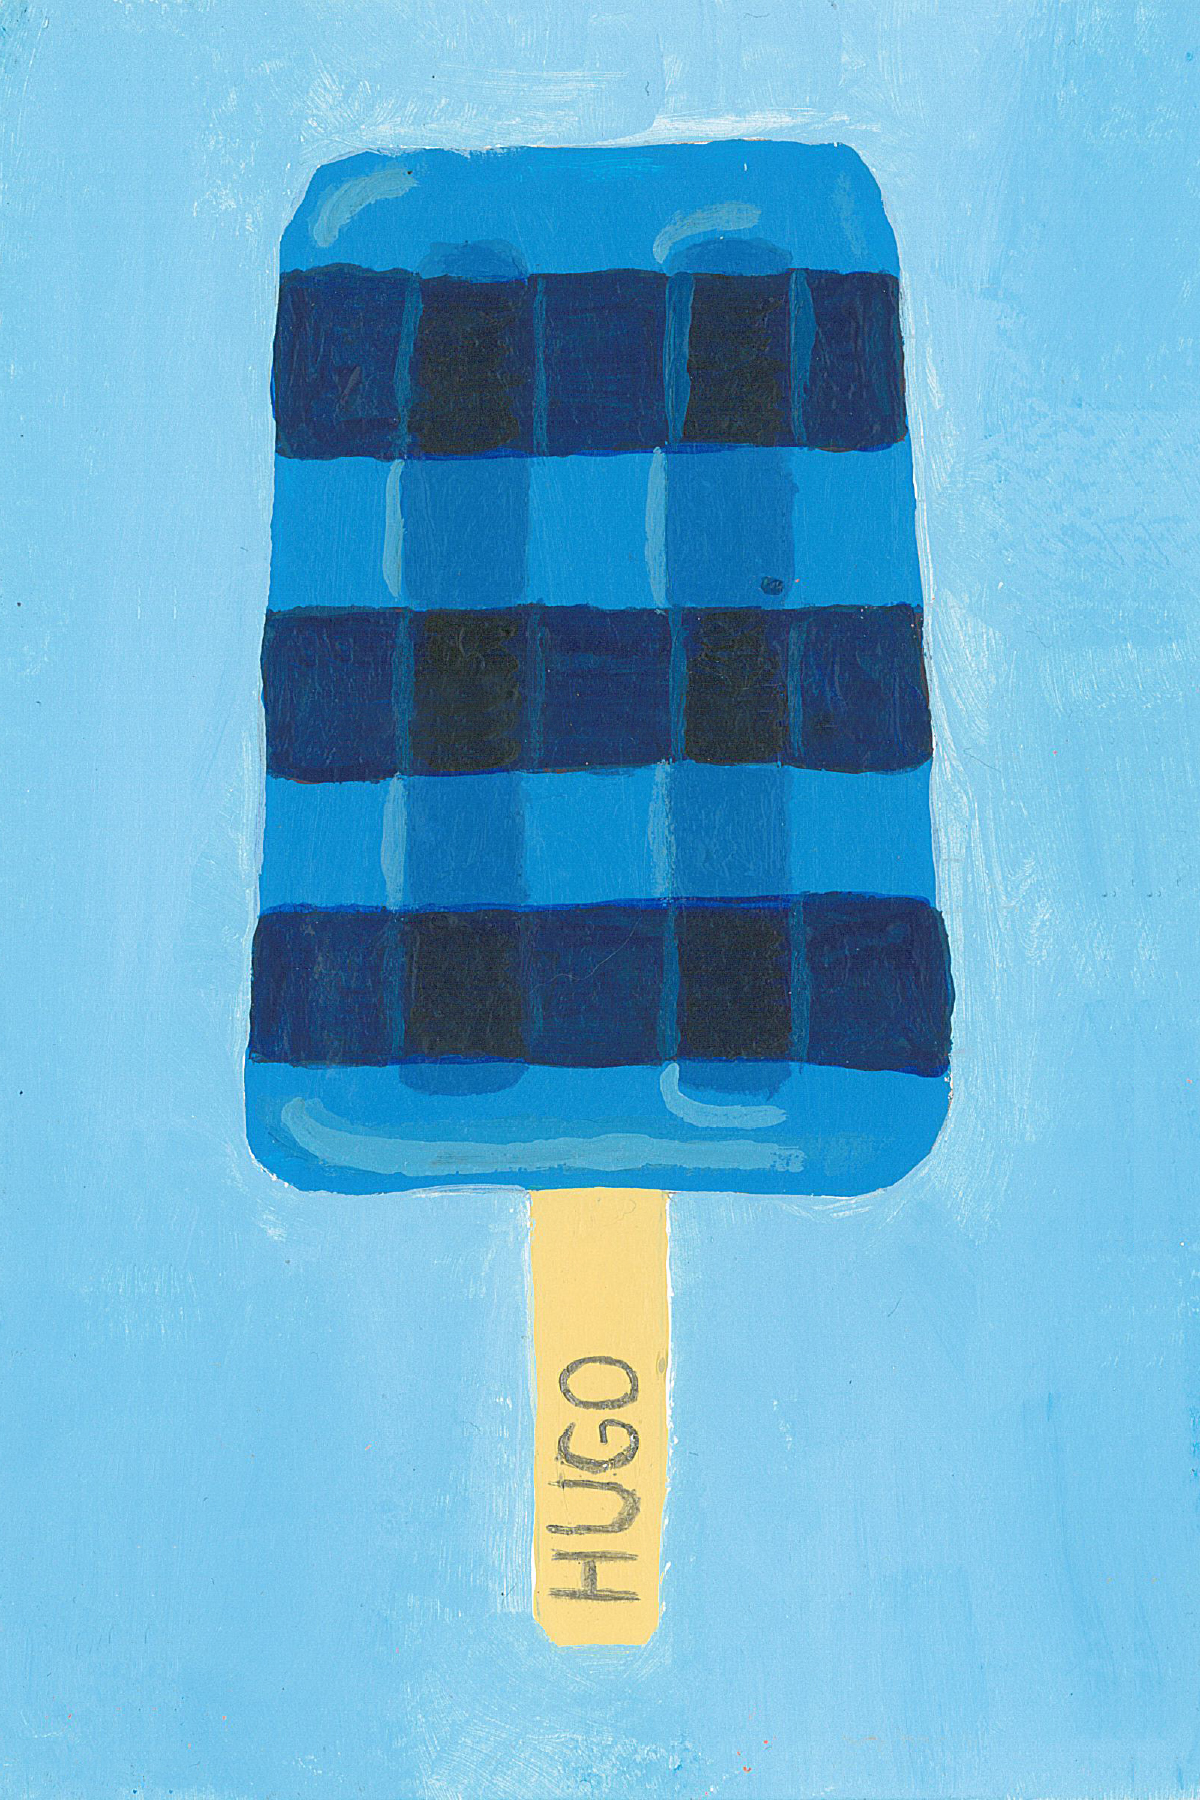 Chris_Cureton_PopsicleSeries_Hugo_4x6_Acrylic.jpg